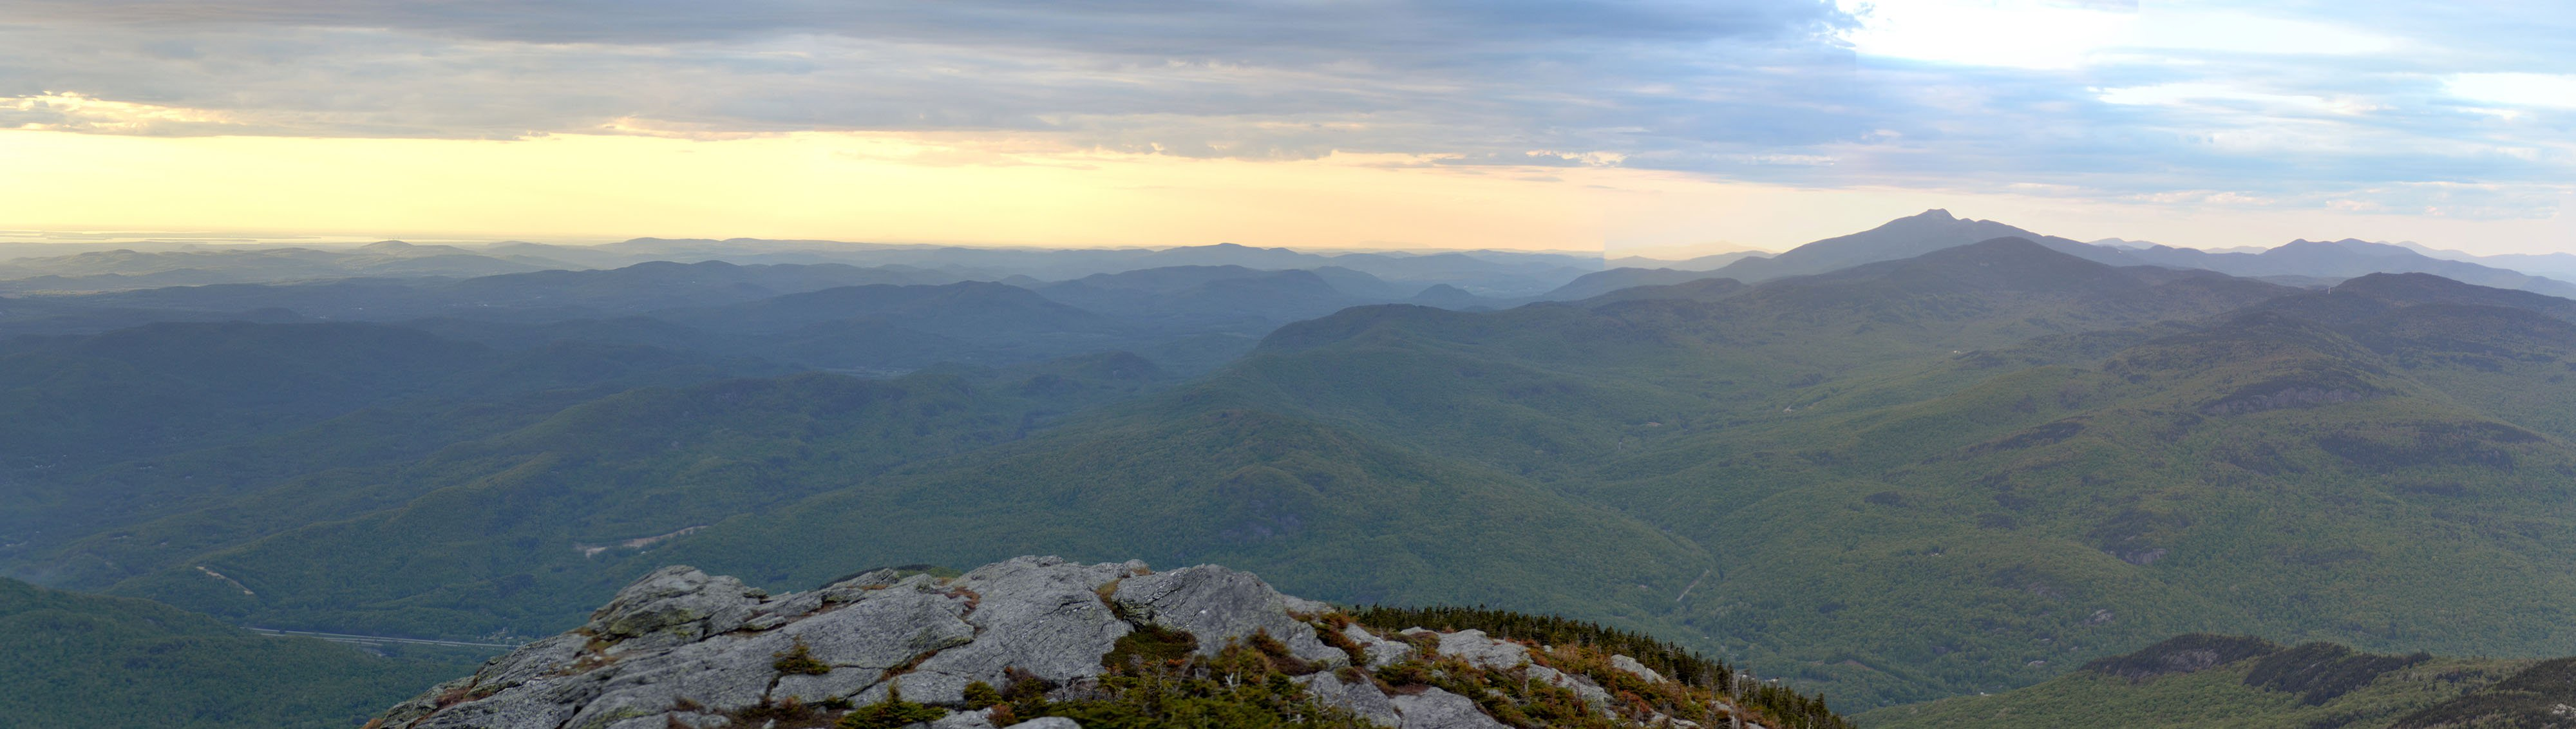 Essential Guide to Getting Outside in Vermont with Outdoor Gear